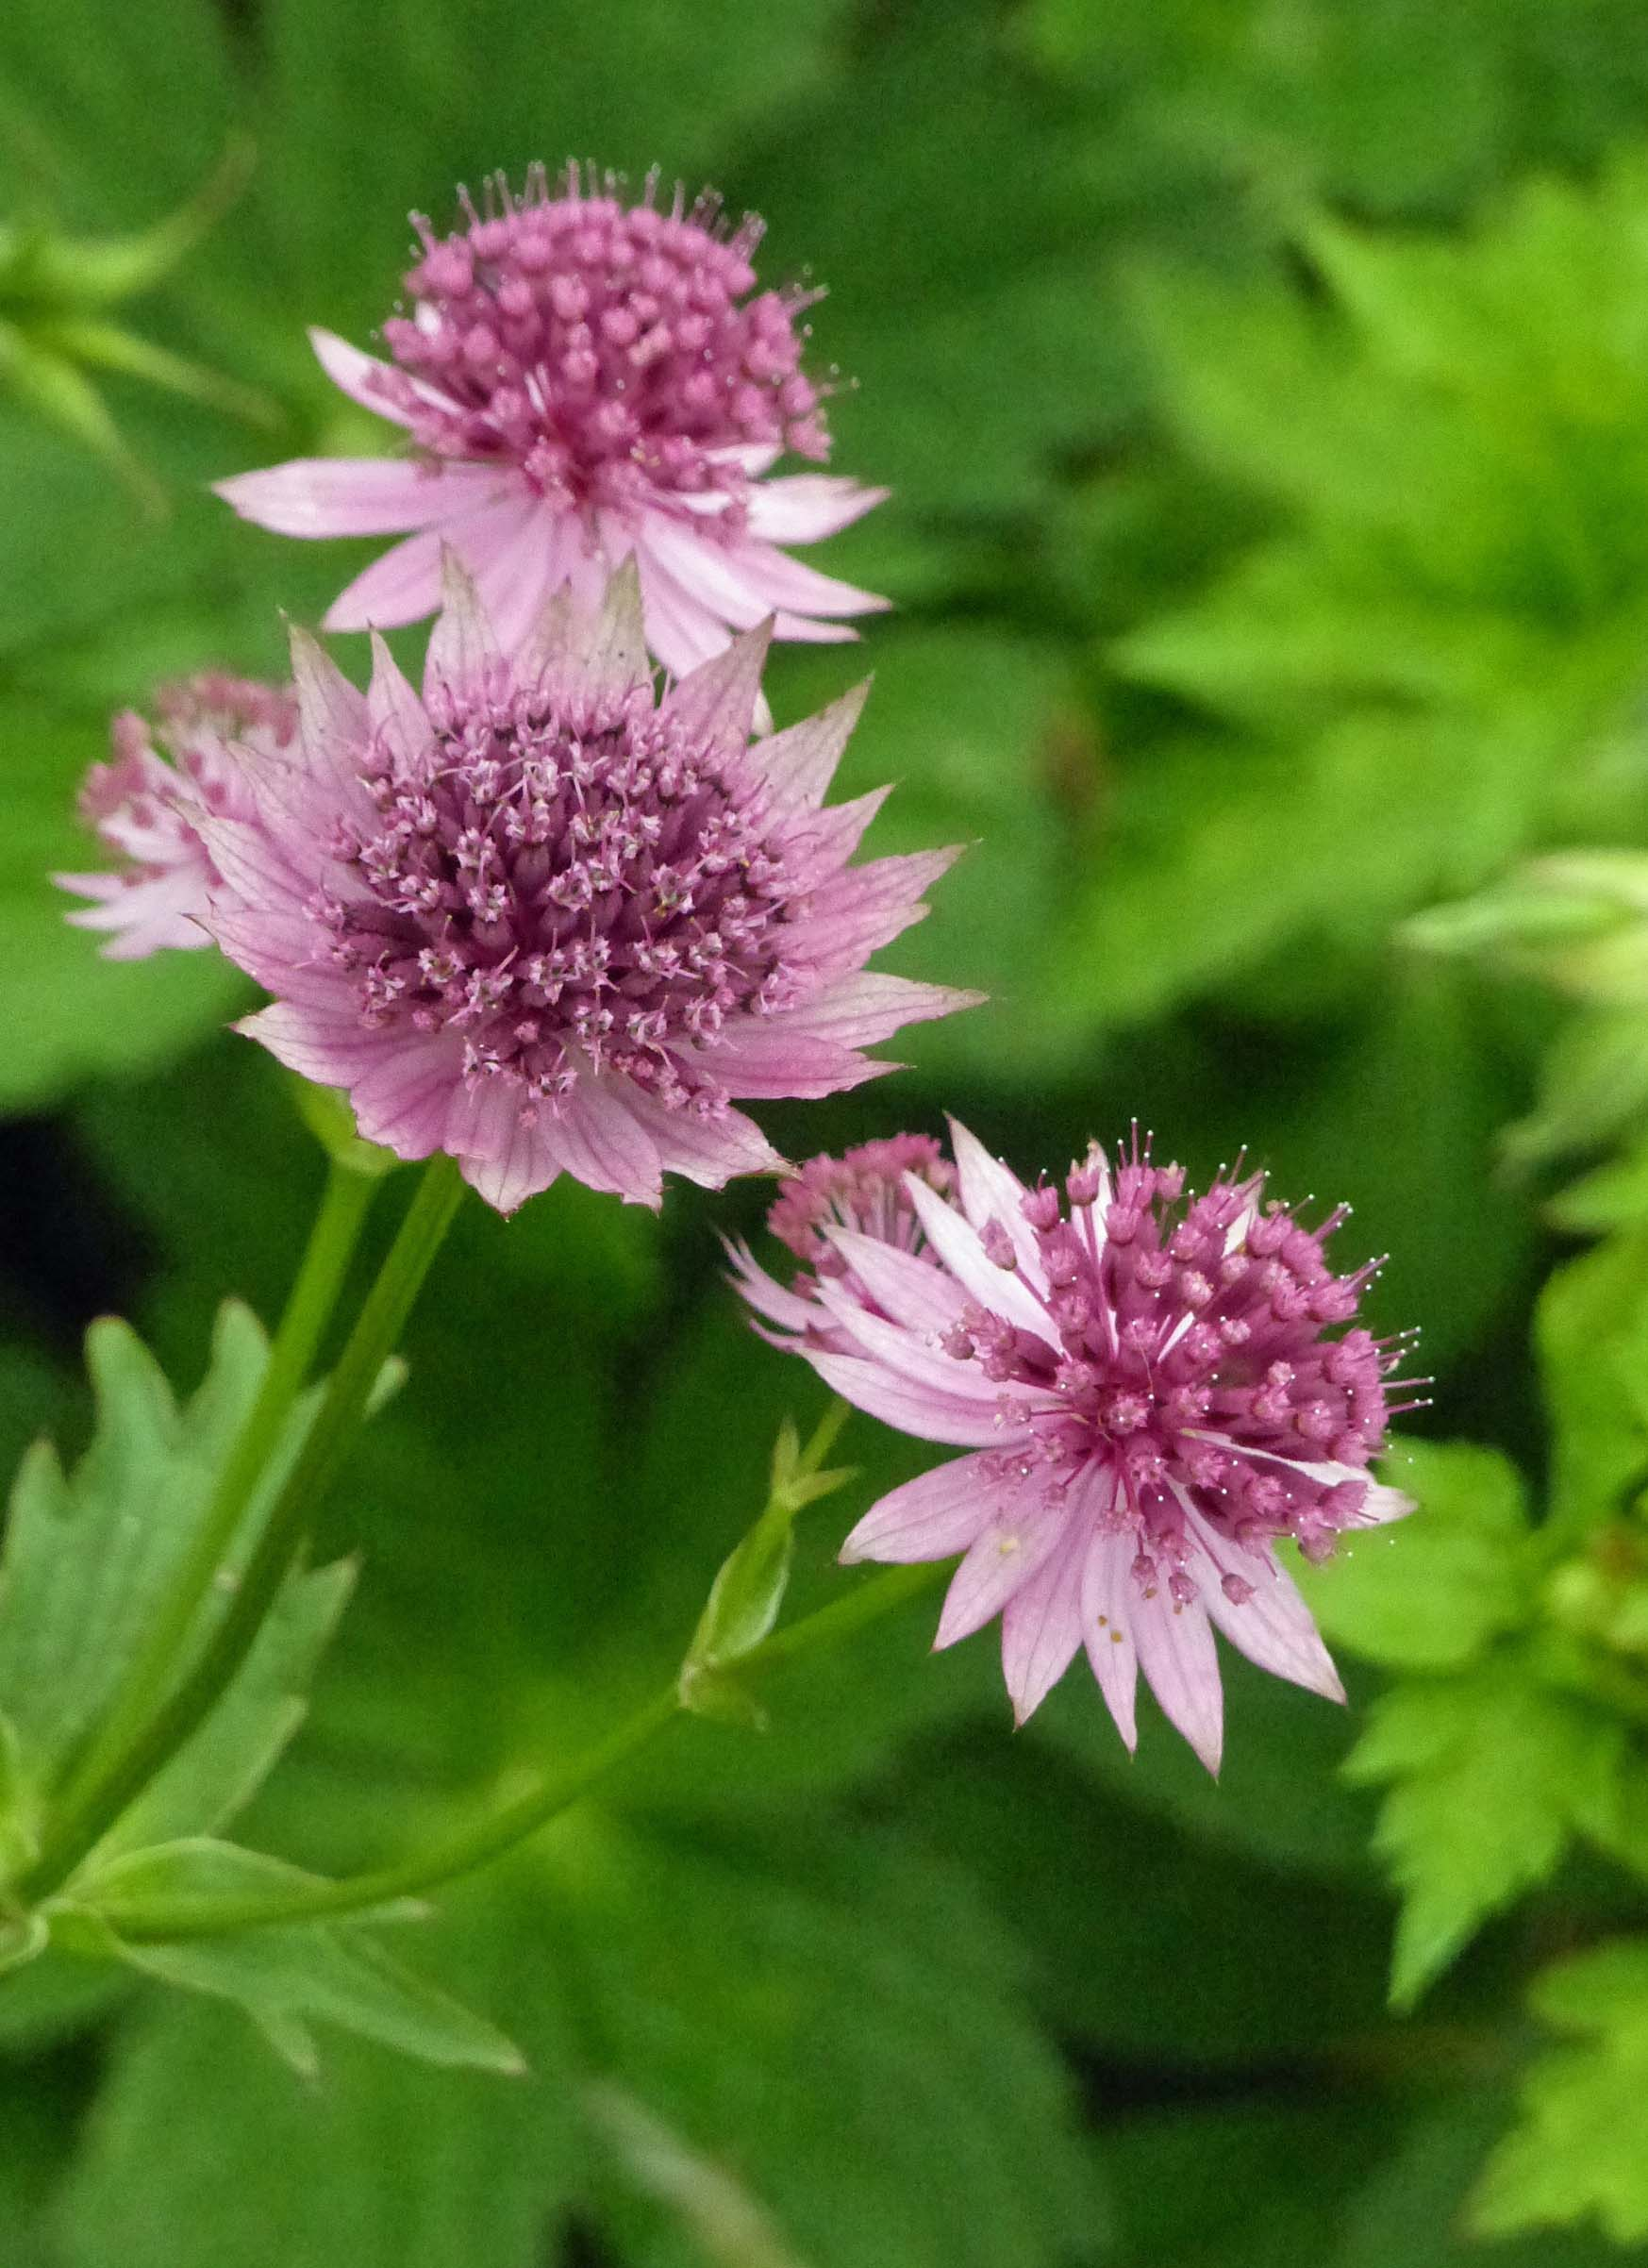 Spiky pink flowers